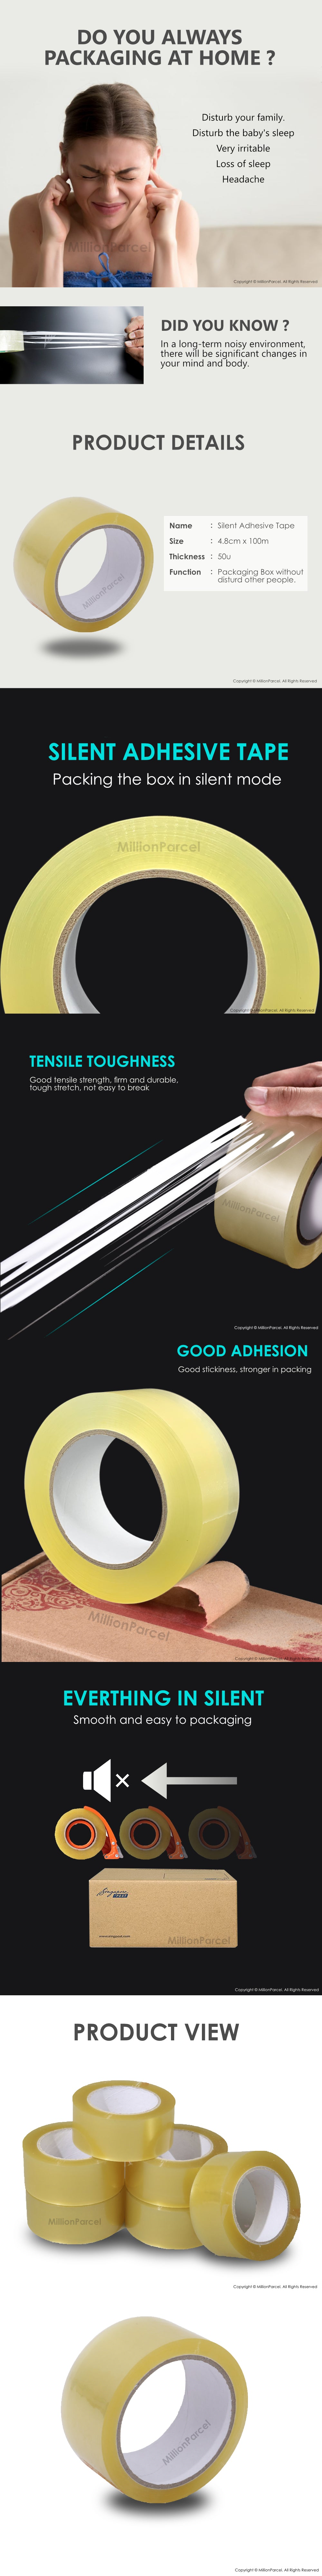 Silent Adhesive Tape